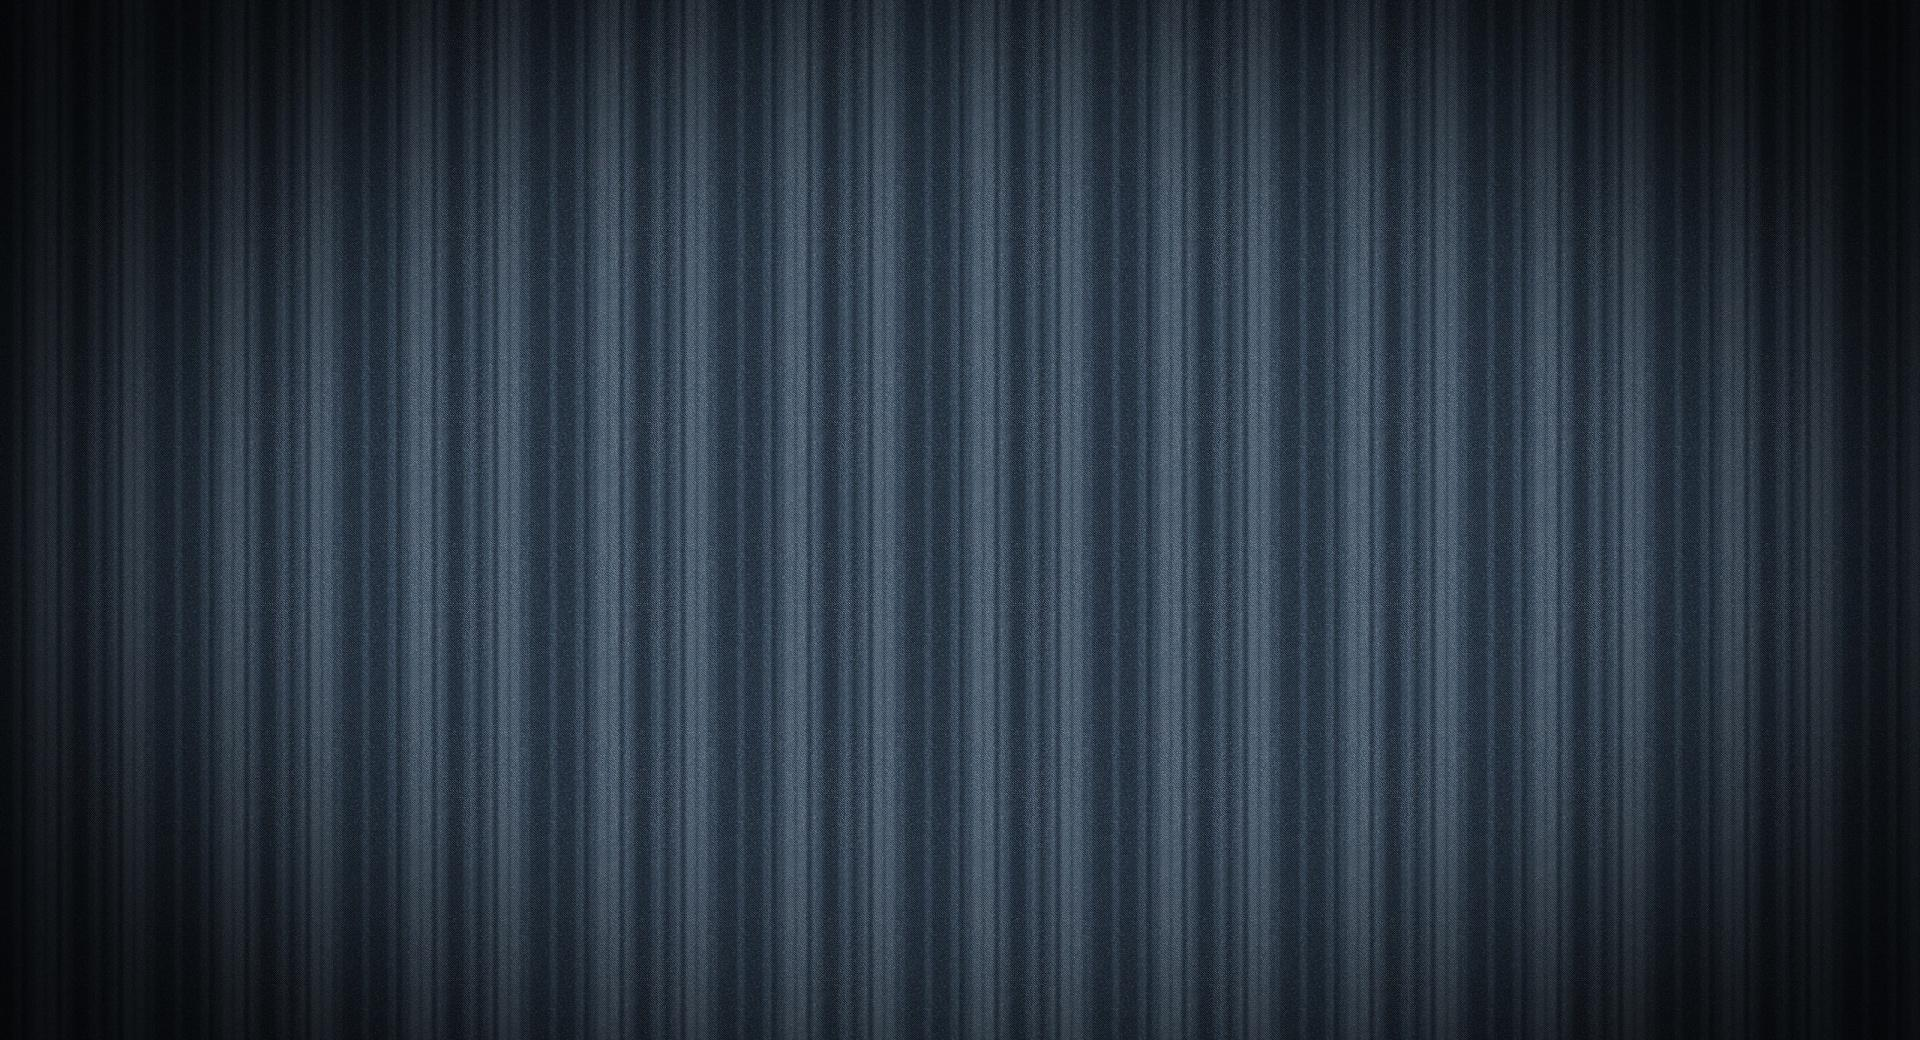 Blue Striped Fabric wallpapers HD quality